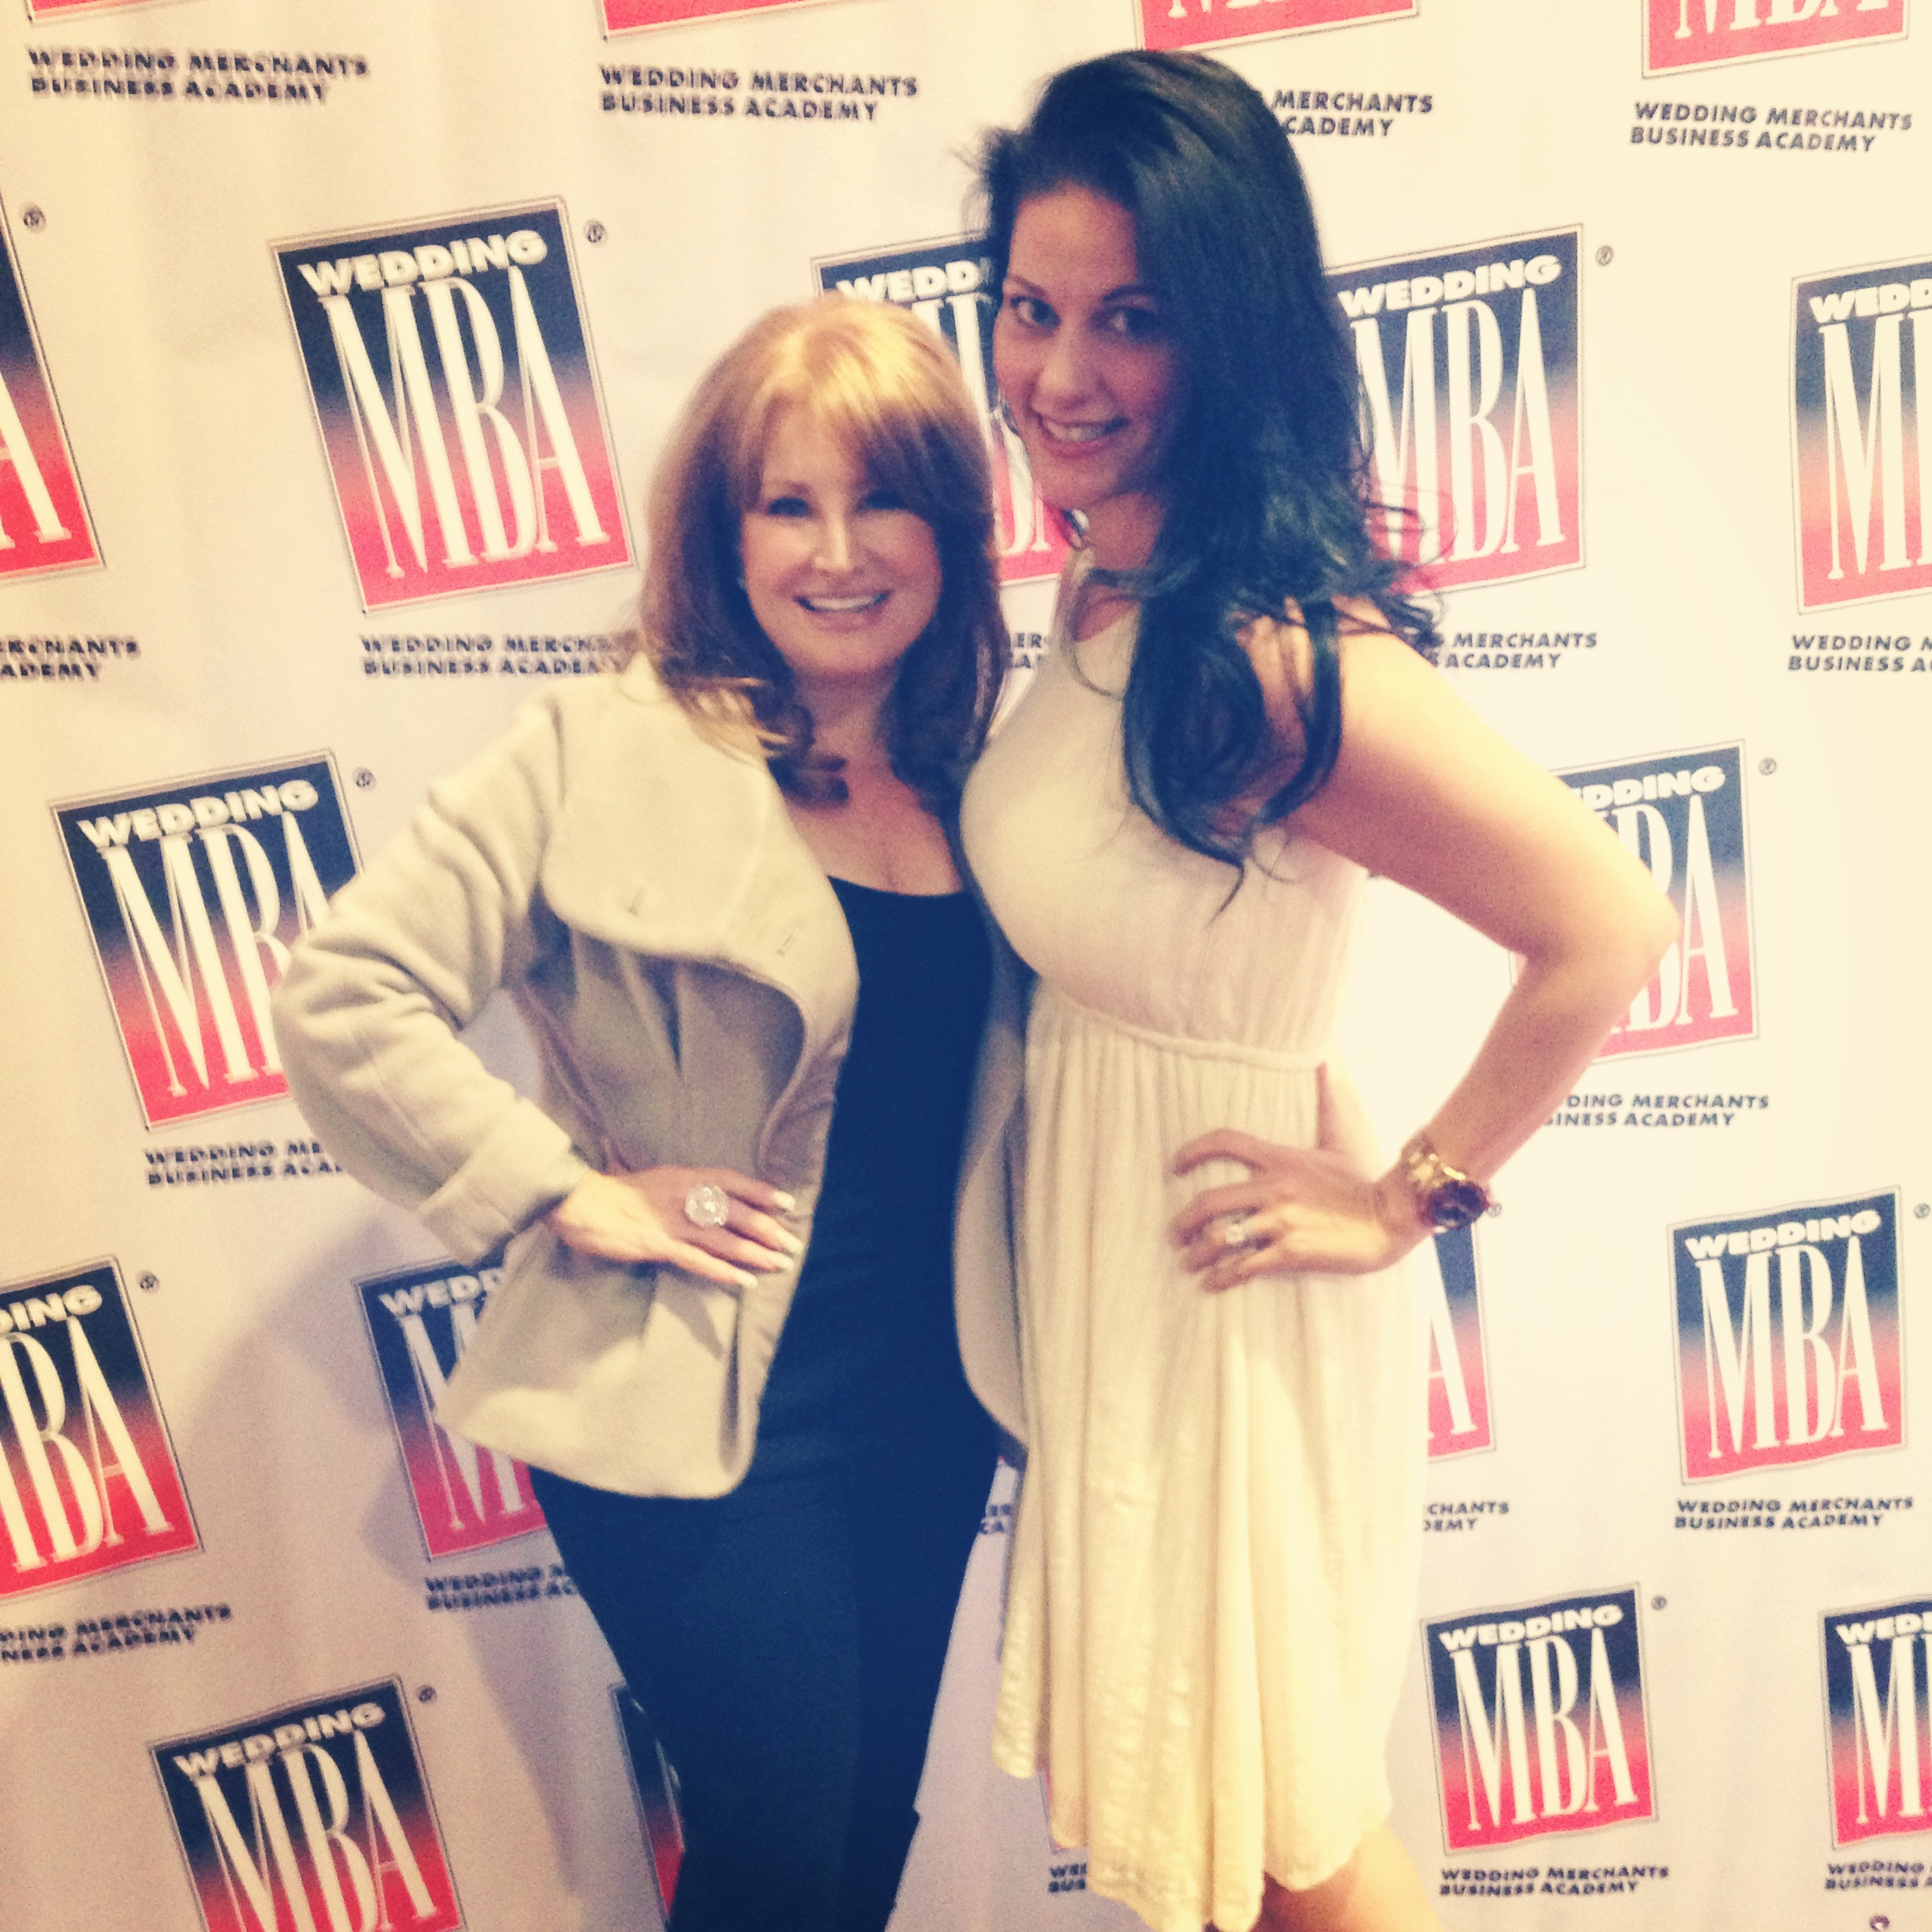 With the ever-so-adorable Renee Strauss of Brides of Beverly Hills at the WMBA 2013. She took the time to meet with every wedding planner, every attendee, and ever fan that heard her speak.